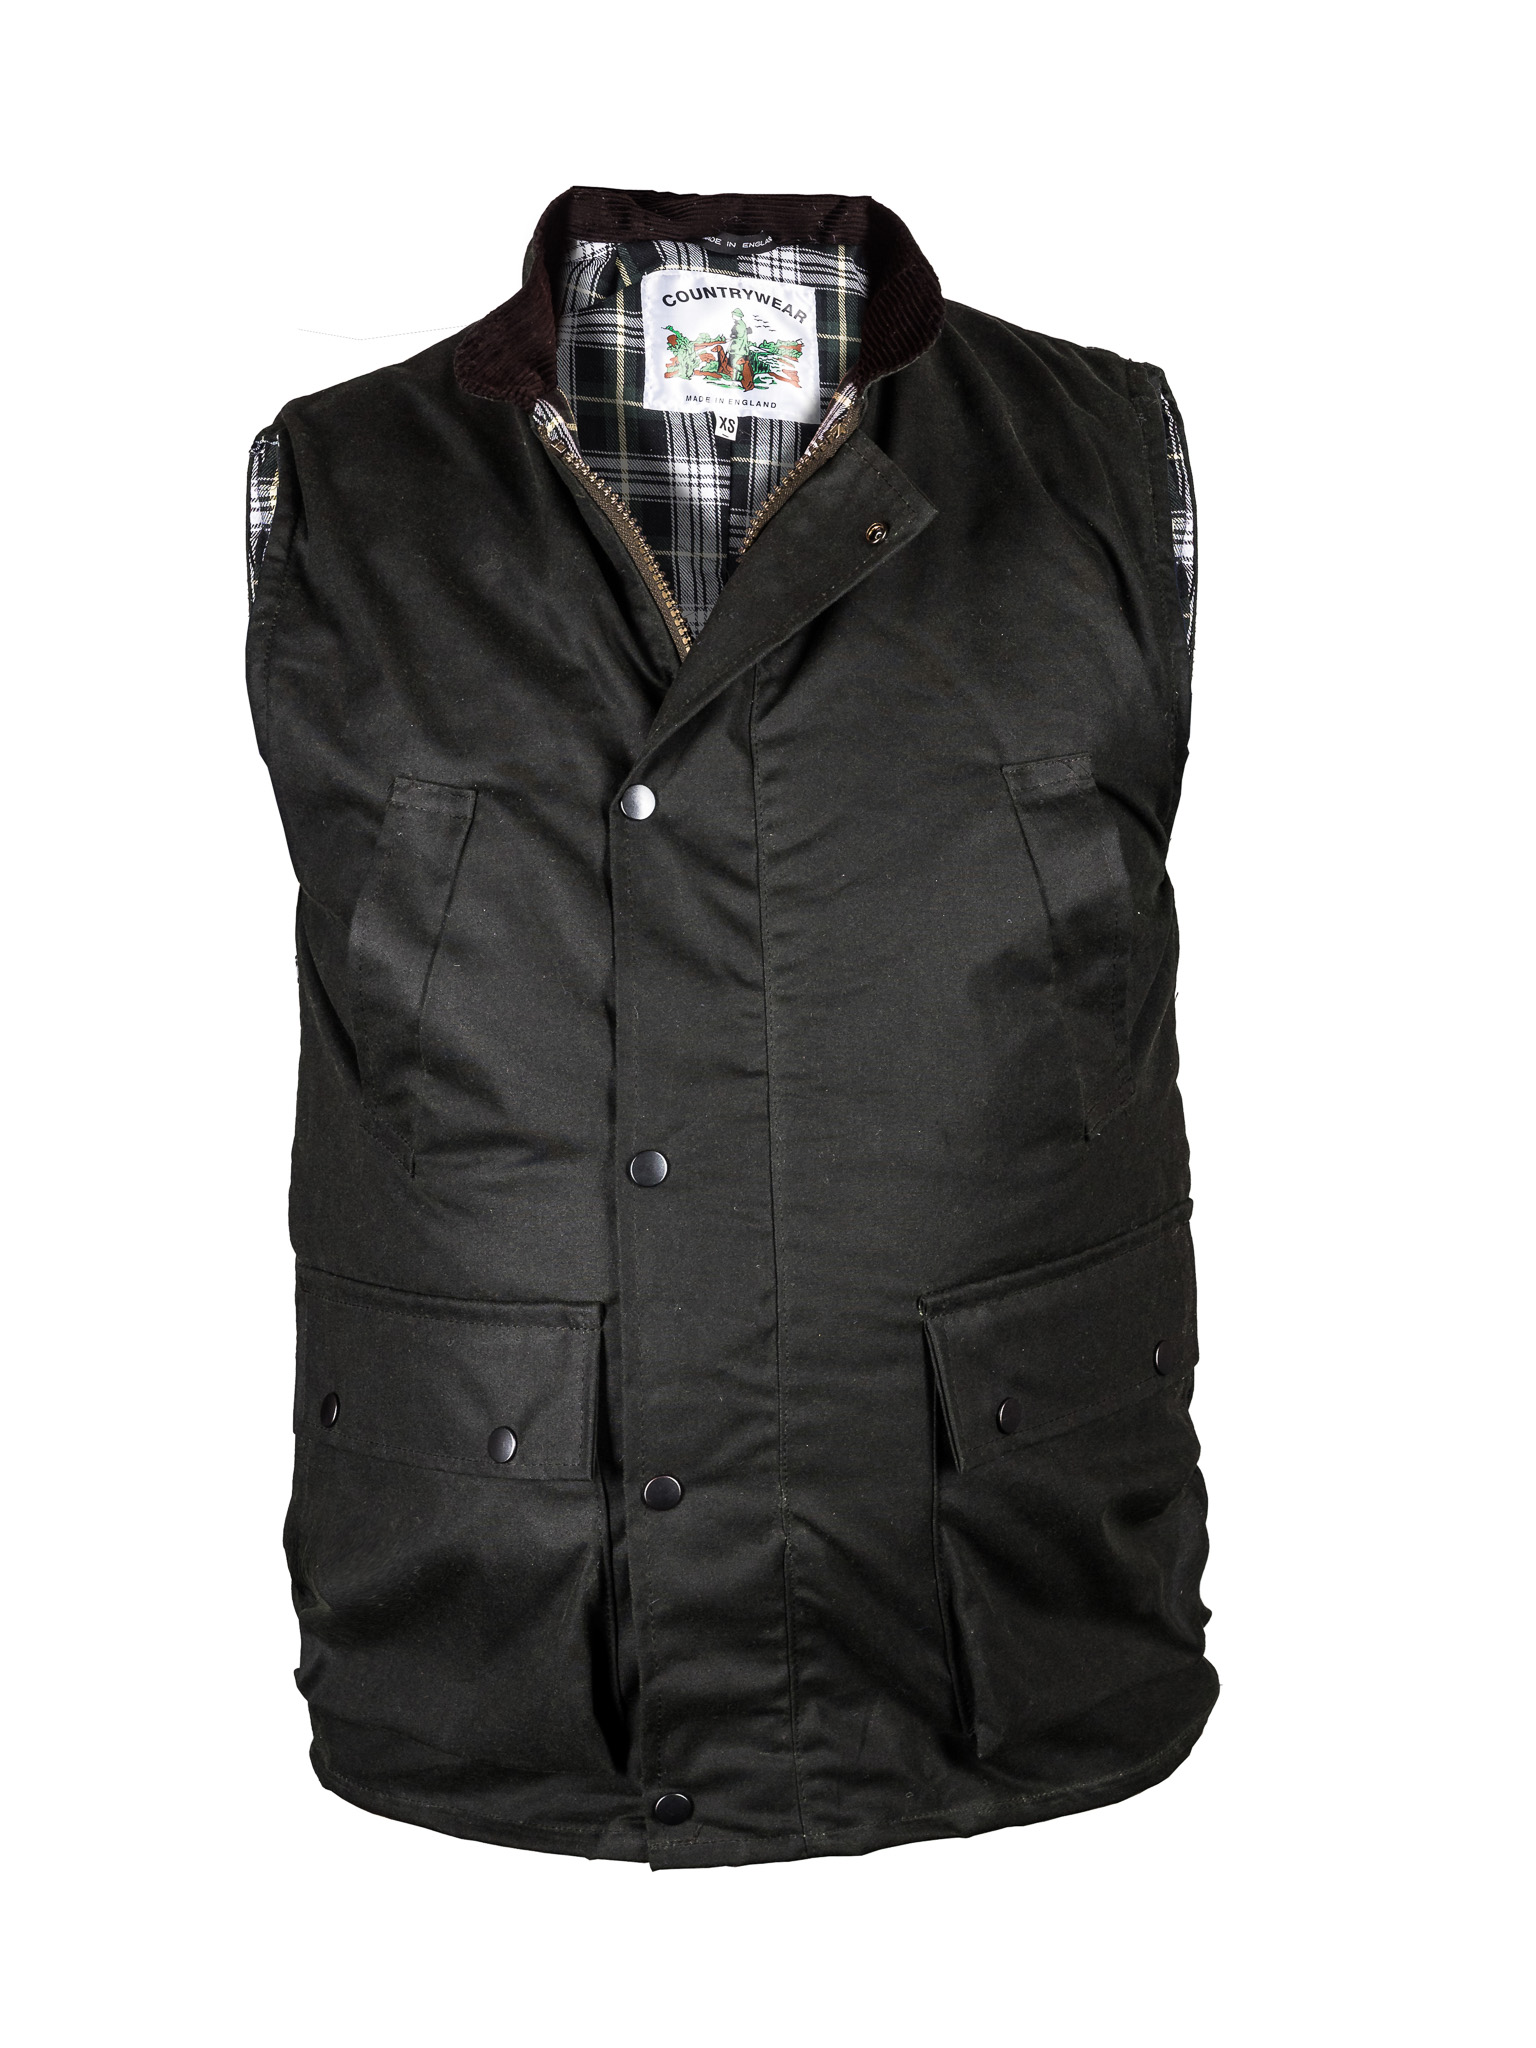 Country Wear Wax Gilet - Edinburgh Outdoor Wear